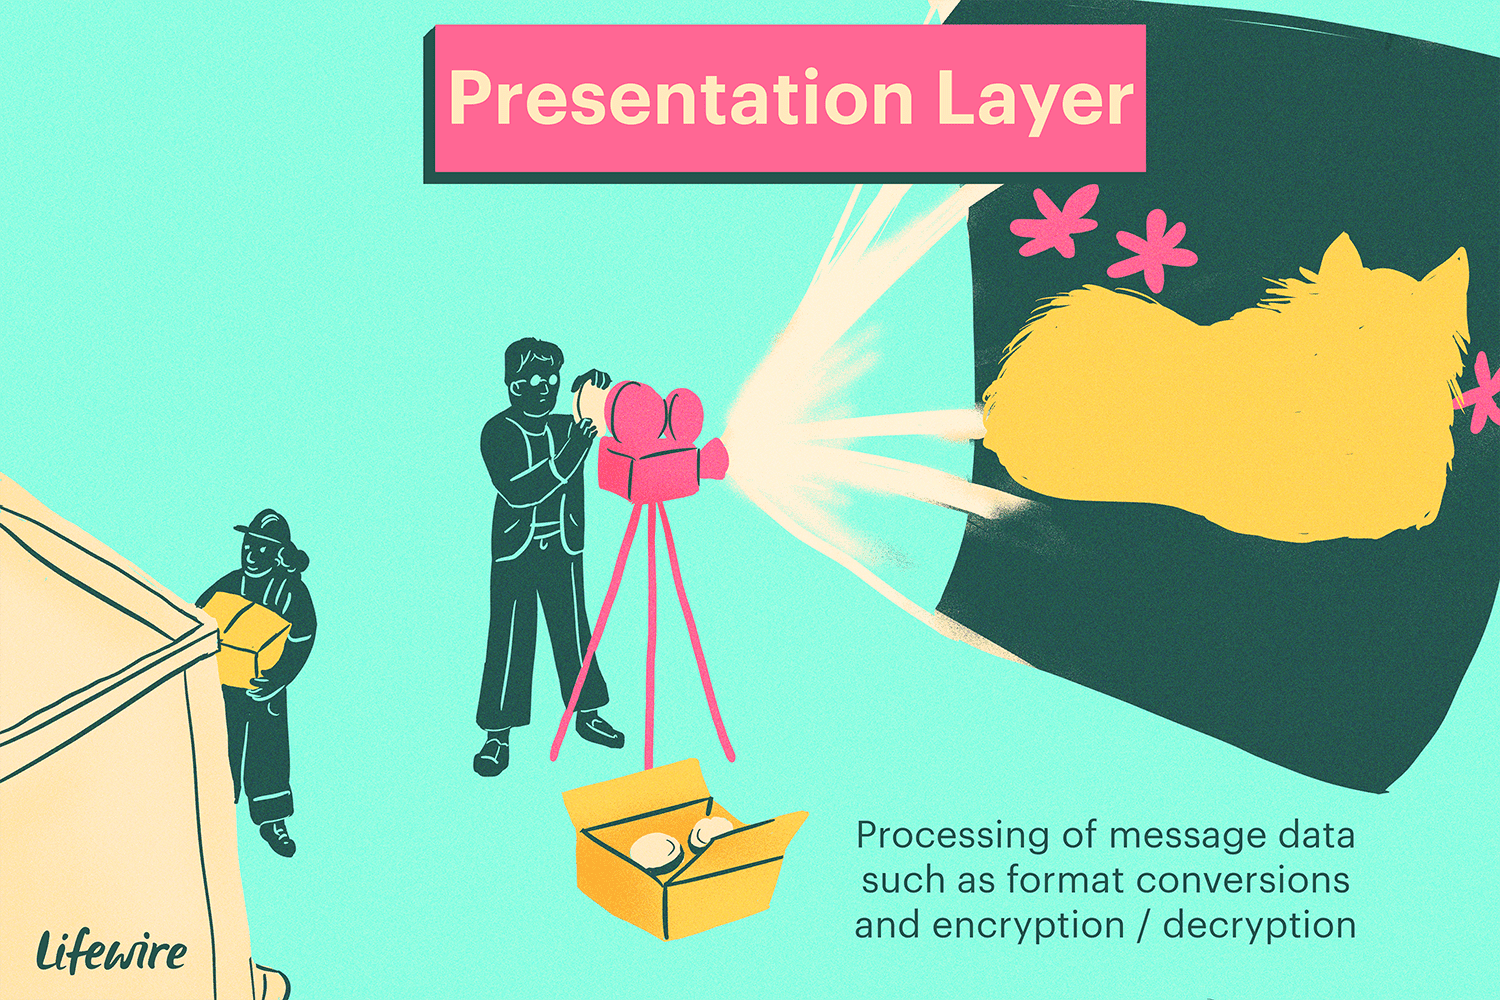 Illustration of the presentation layer, which looks like a movie projector